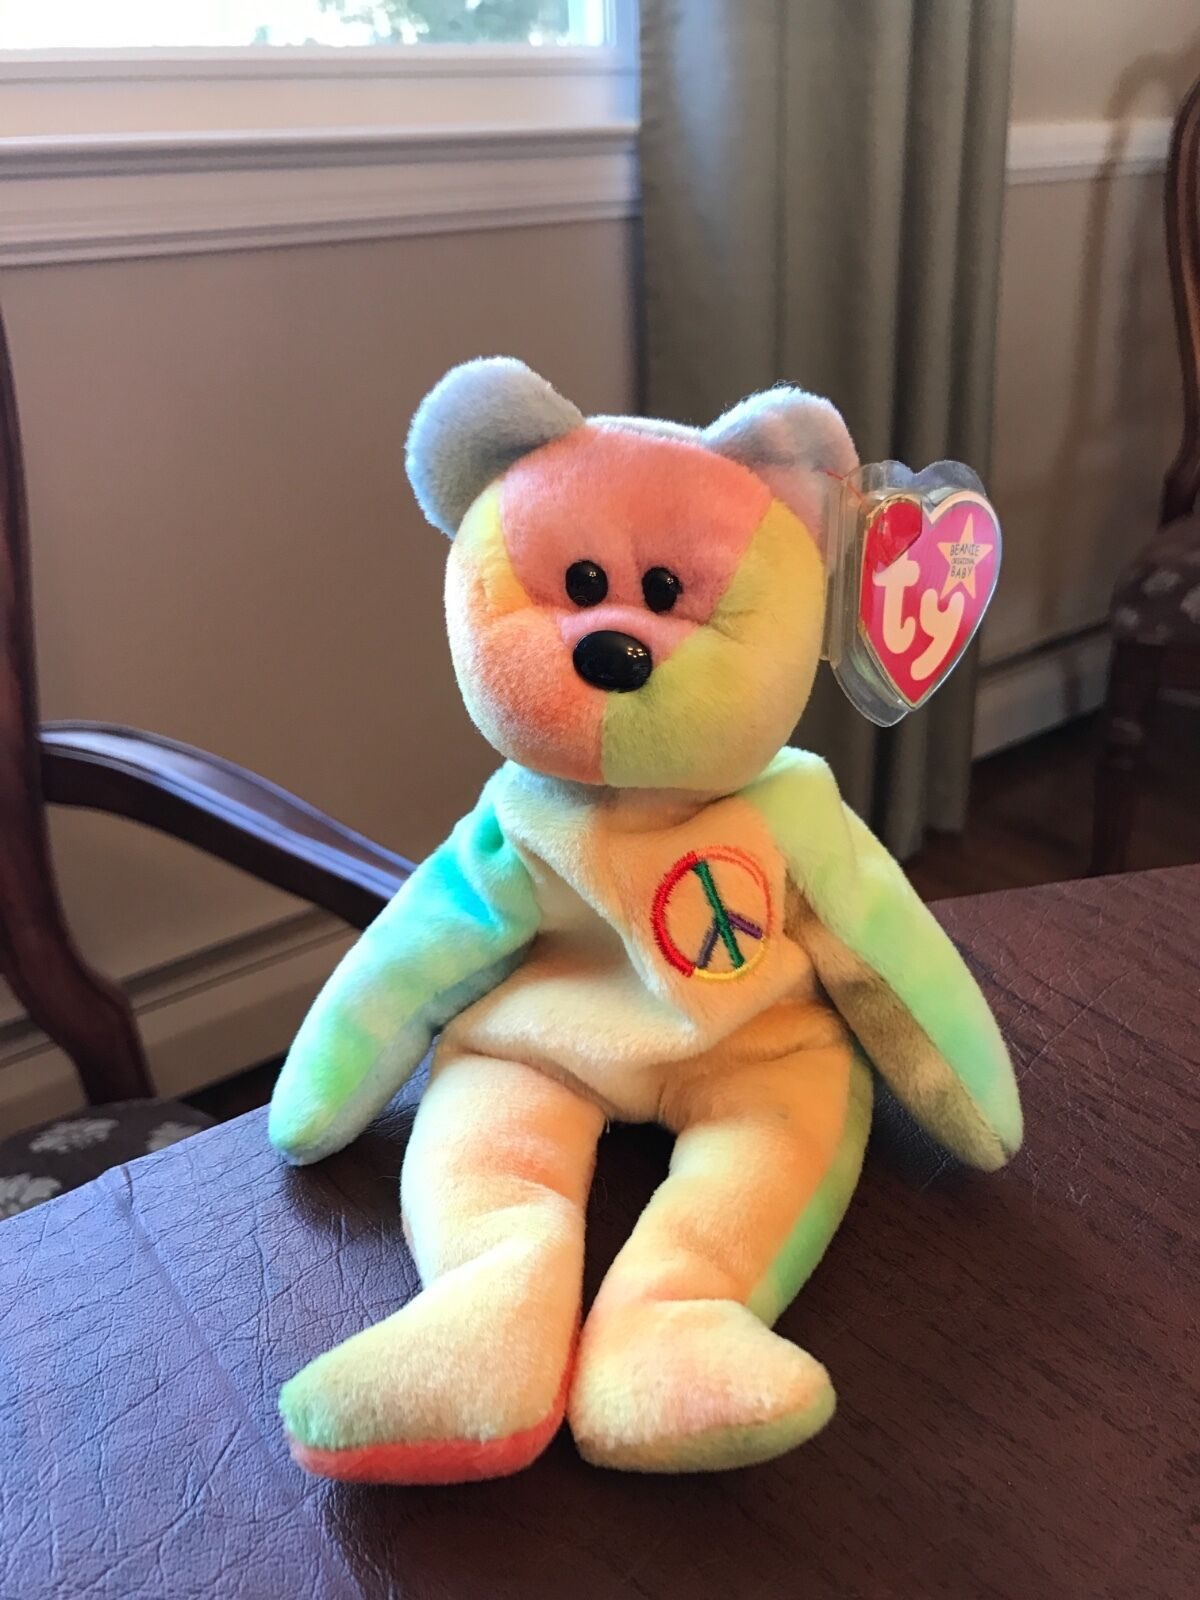 Very Rare Ty Beanie Baby Peace Bear Original Tag Collectible with Tag  Original Errors 13bec4 3f3d3203a19d